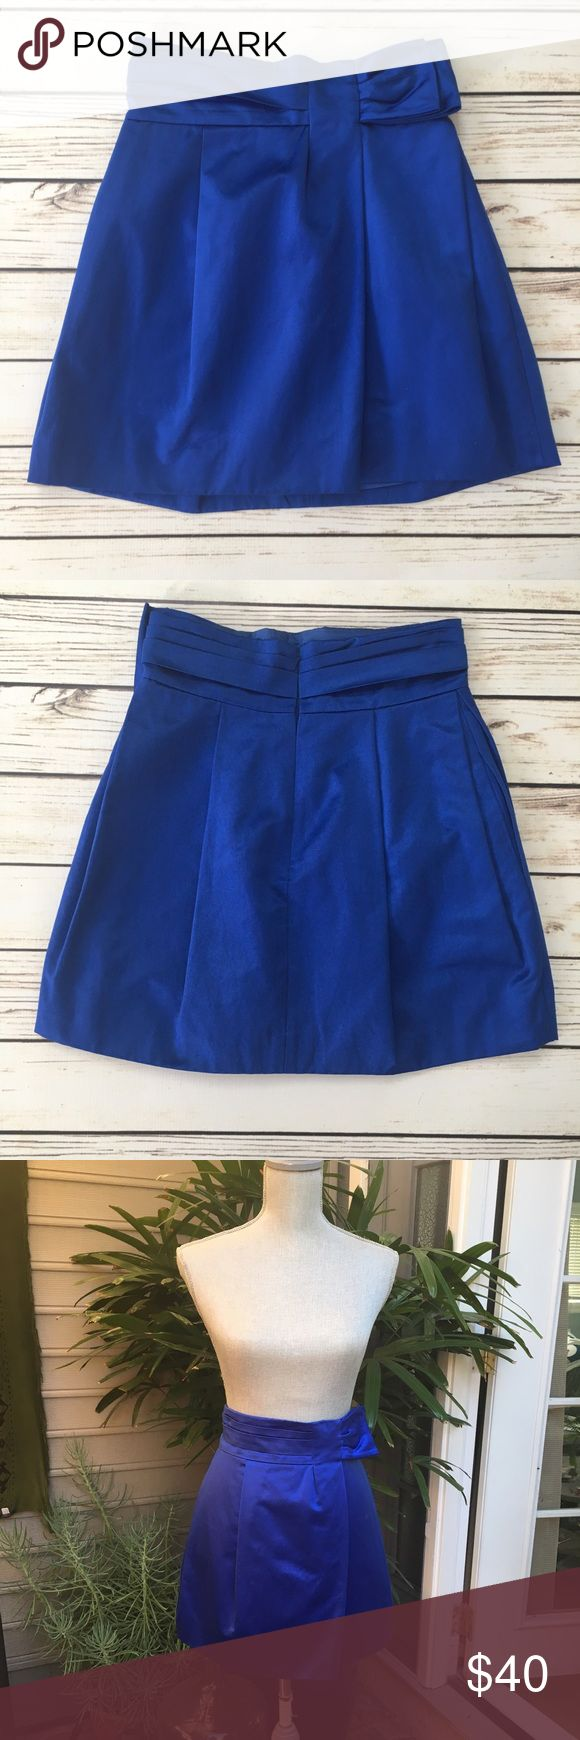 BCBG MAXAZRIA Electric Blue Satin Mini Skirt BCBG MAXAZRIA Electric Blue Satin Mini Skirt. Worn once. As is. In excellent condition. Very chic and in an eye popping on trend color. BCBGMaxAzria Skirts Mini